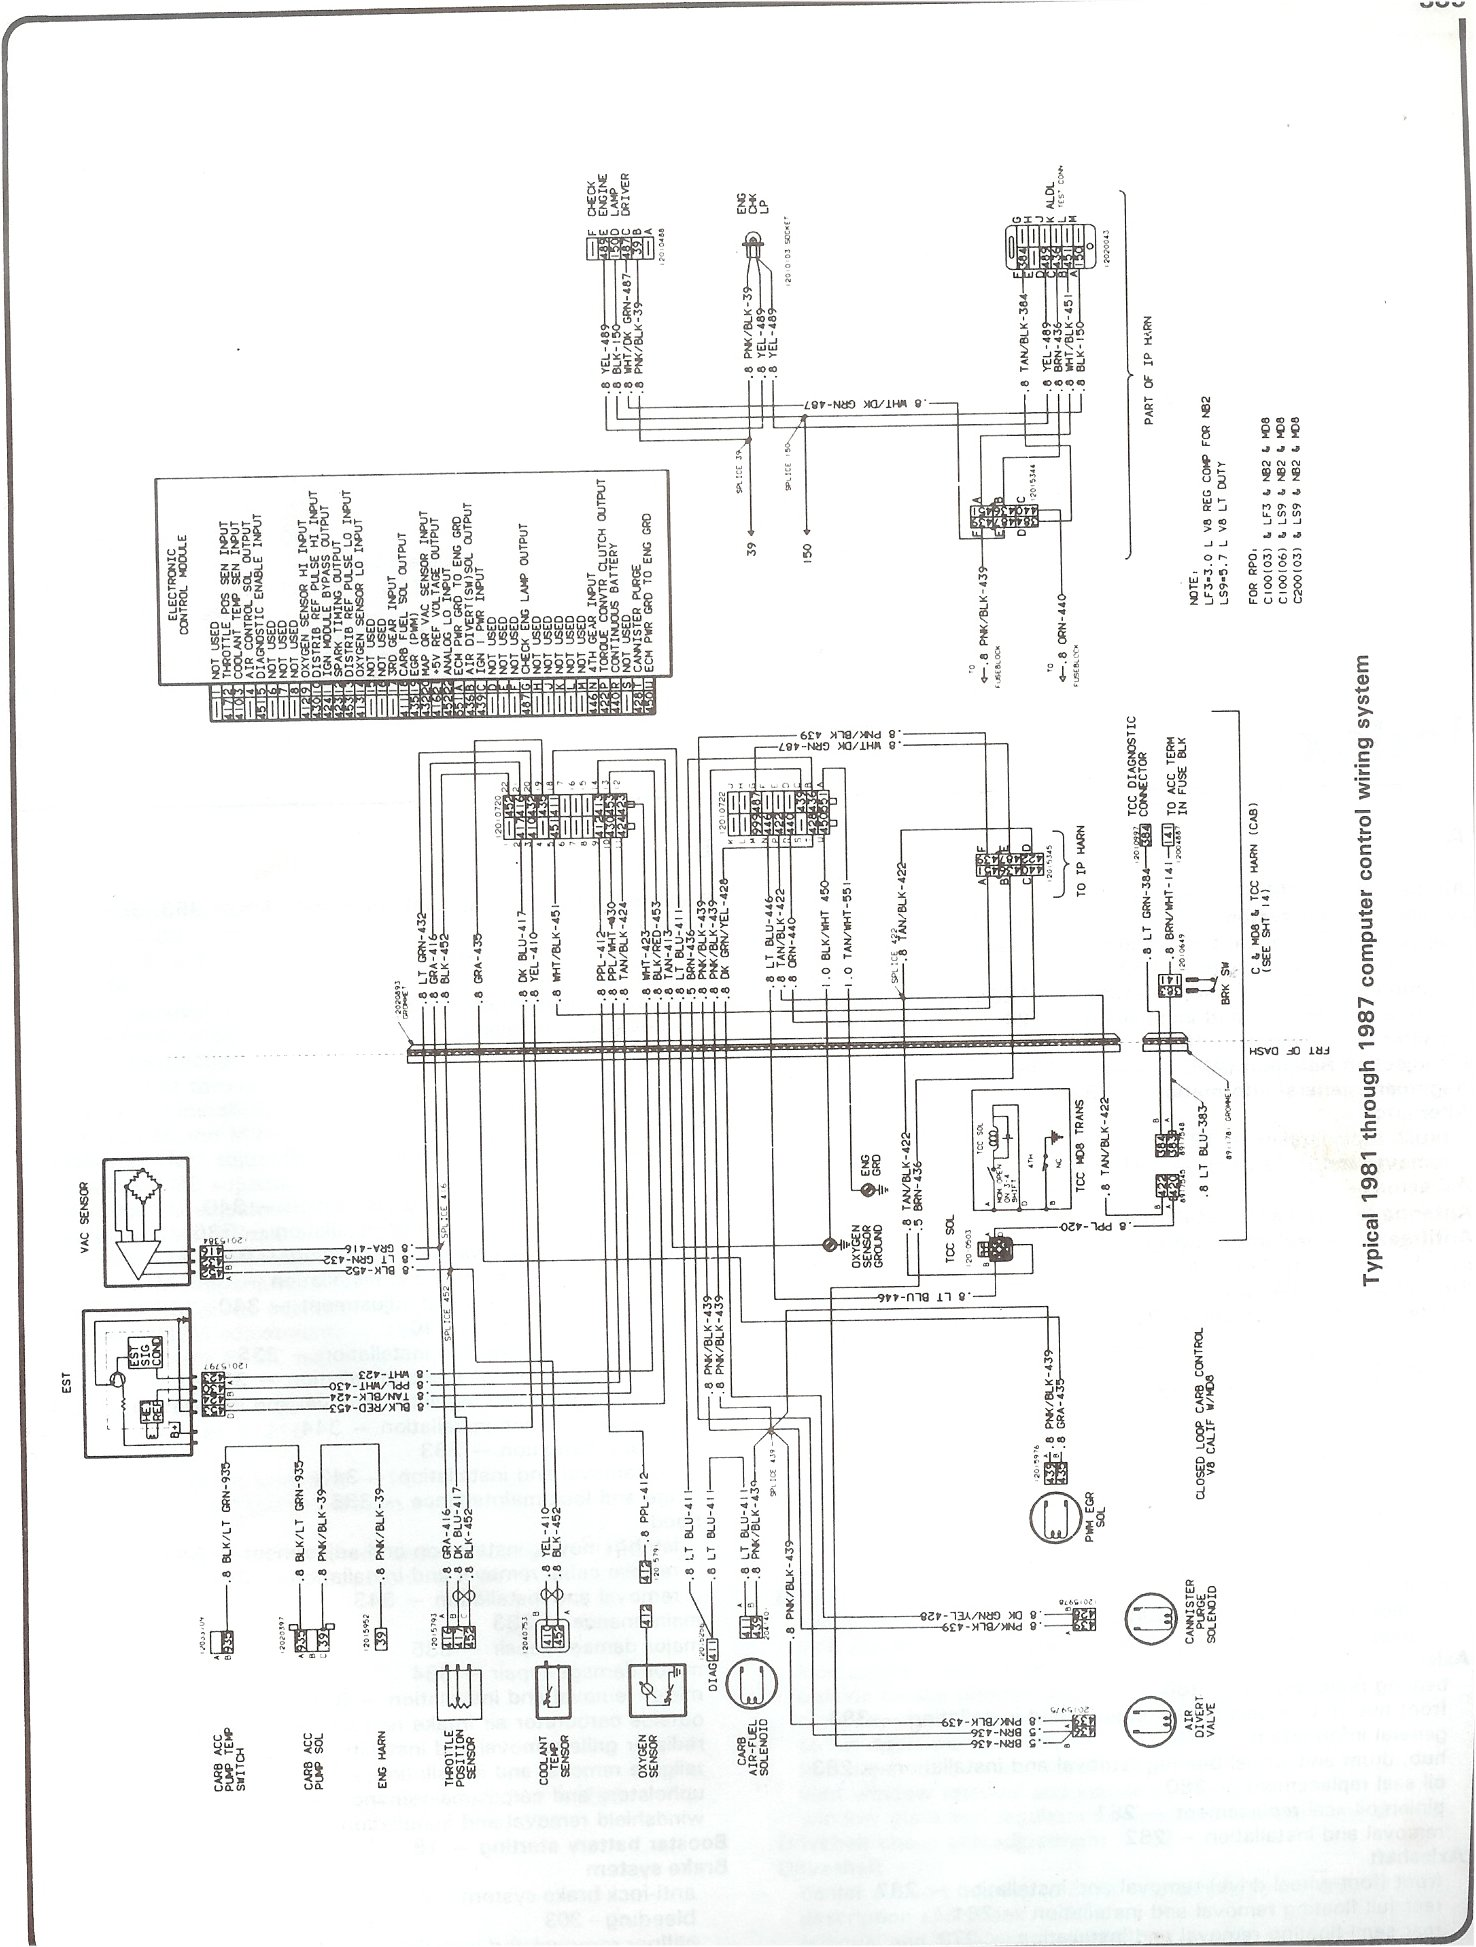 73 Gmc Wiring Harness - Wiring Diagram •